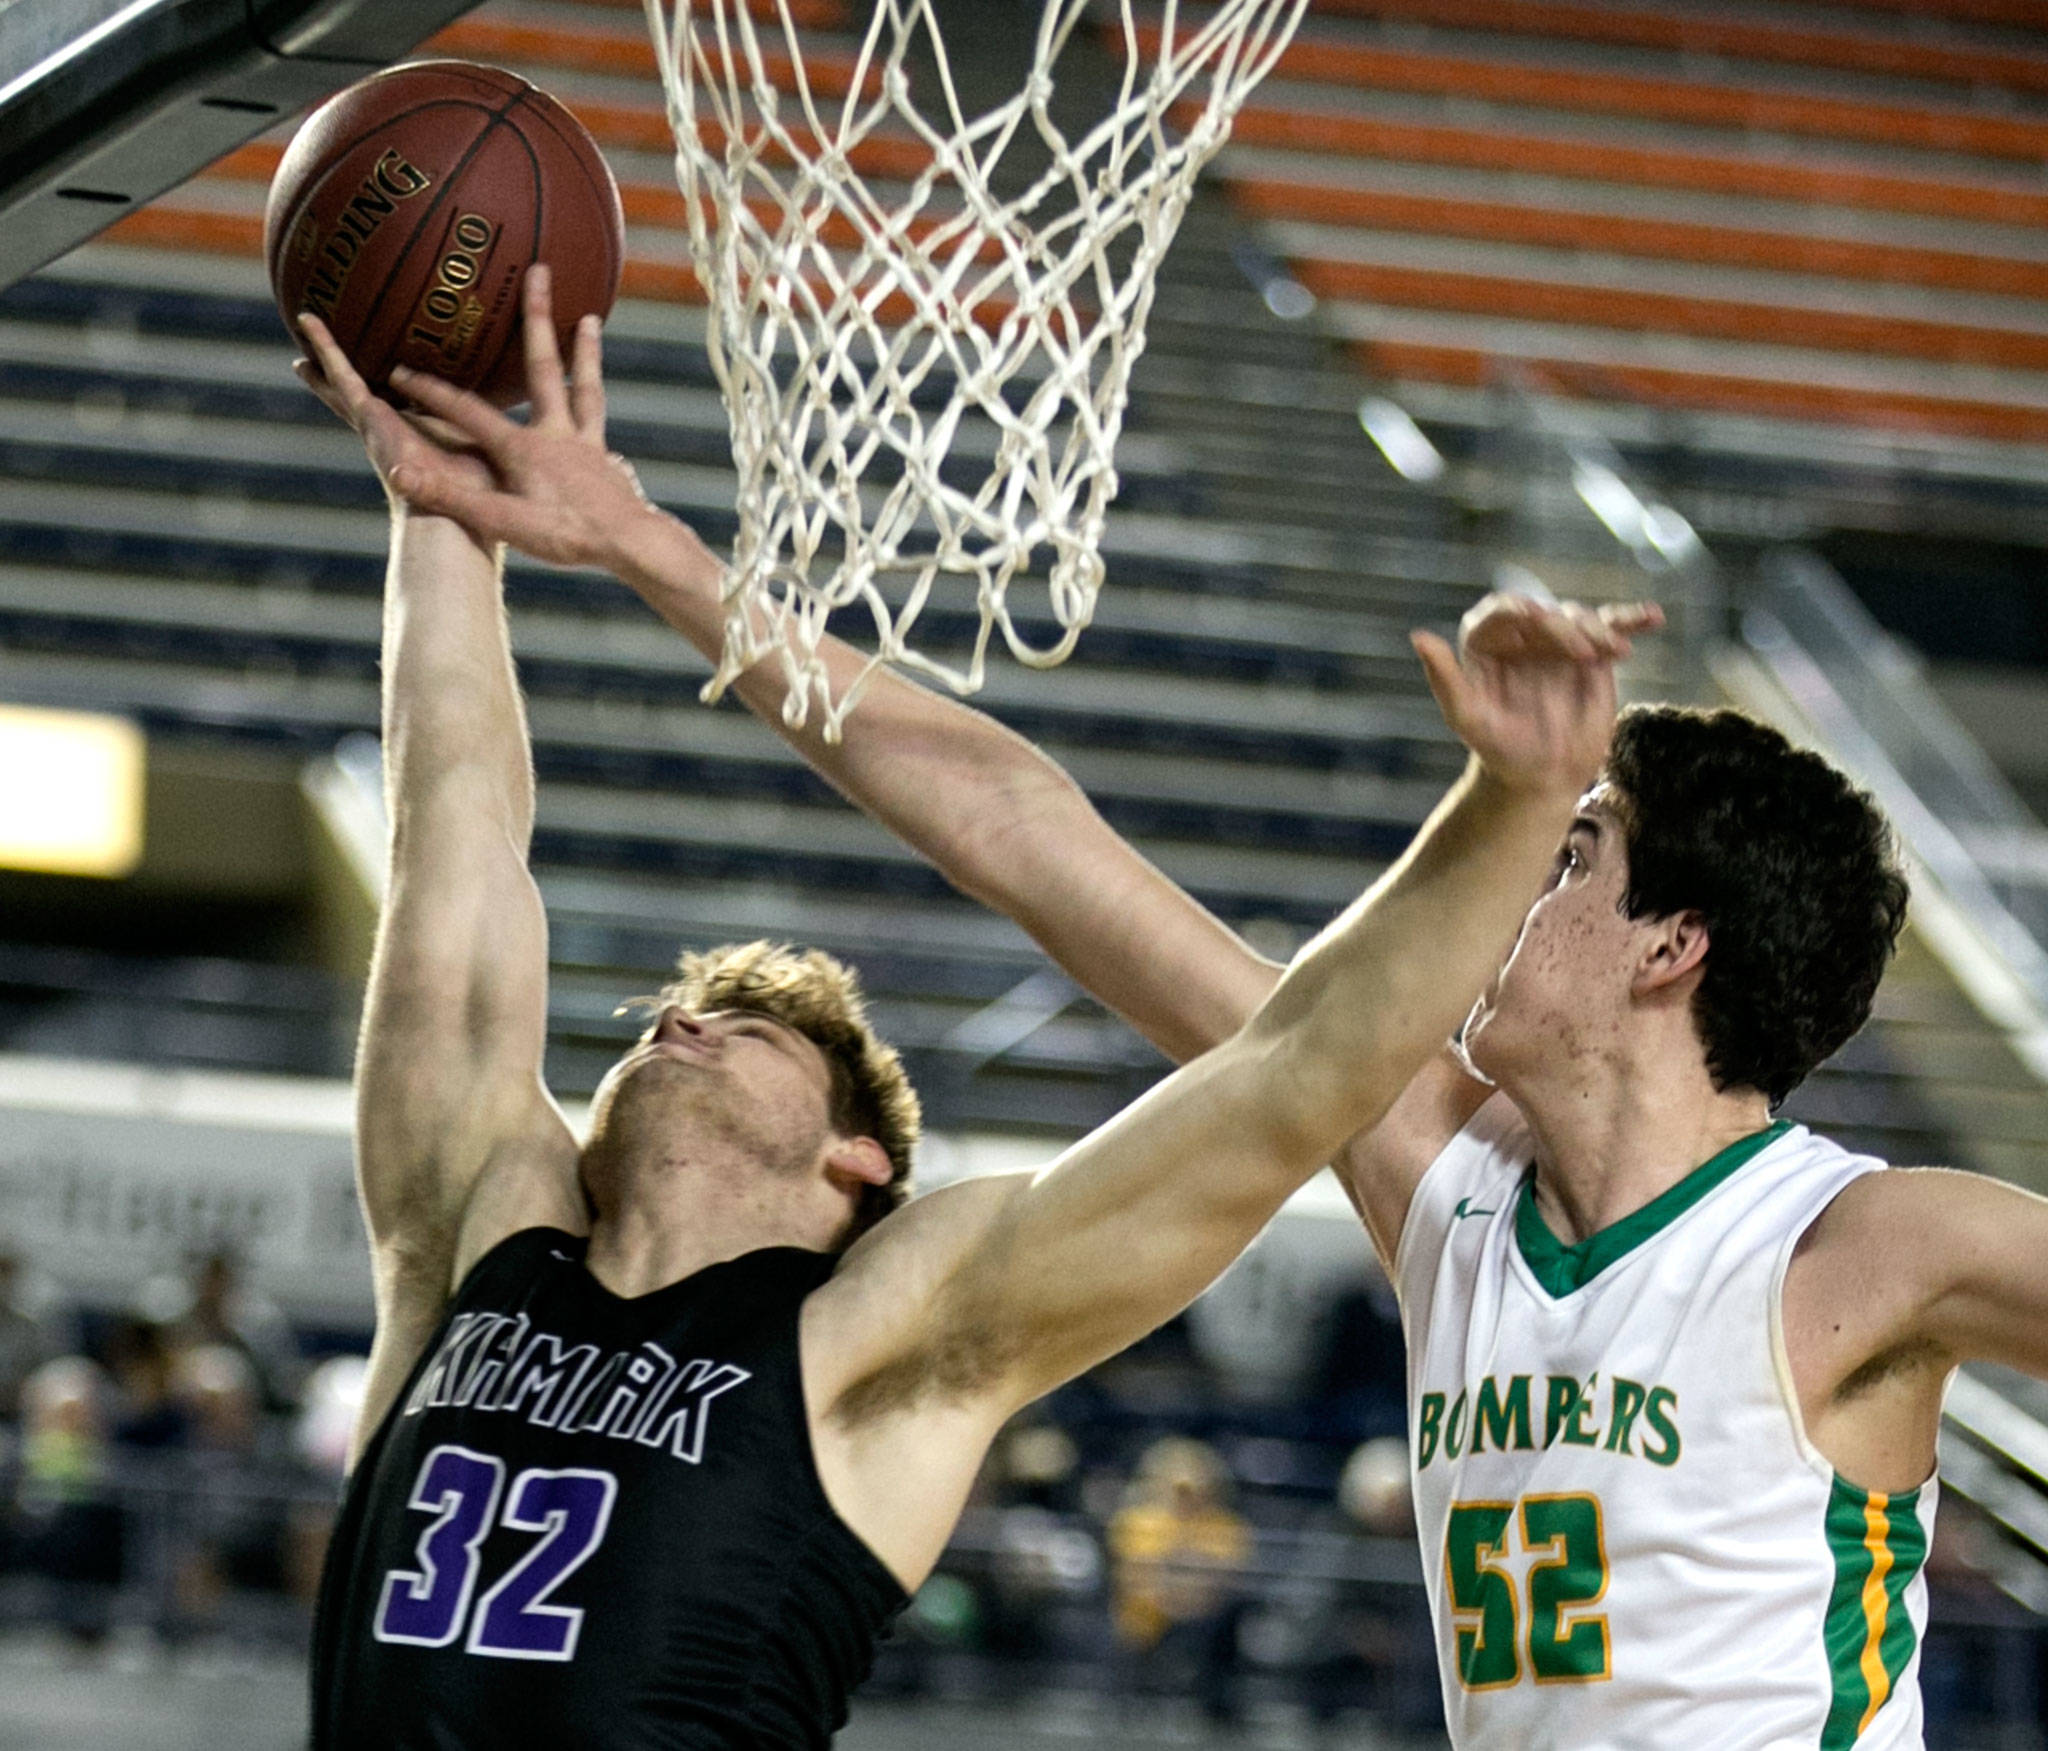 Kamiak's Braden Leary has his shot blocked by Richland's Riley Sorn during a 4A boys Hardwood Classic game on March 1, 2018, at the Tacoma Dome. (Kevin Clark / The Herald)